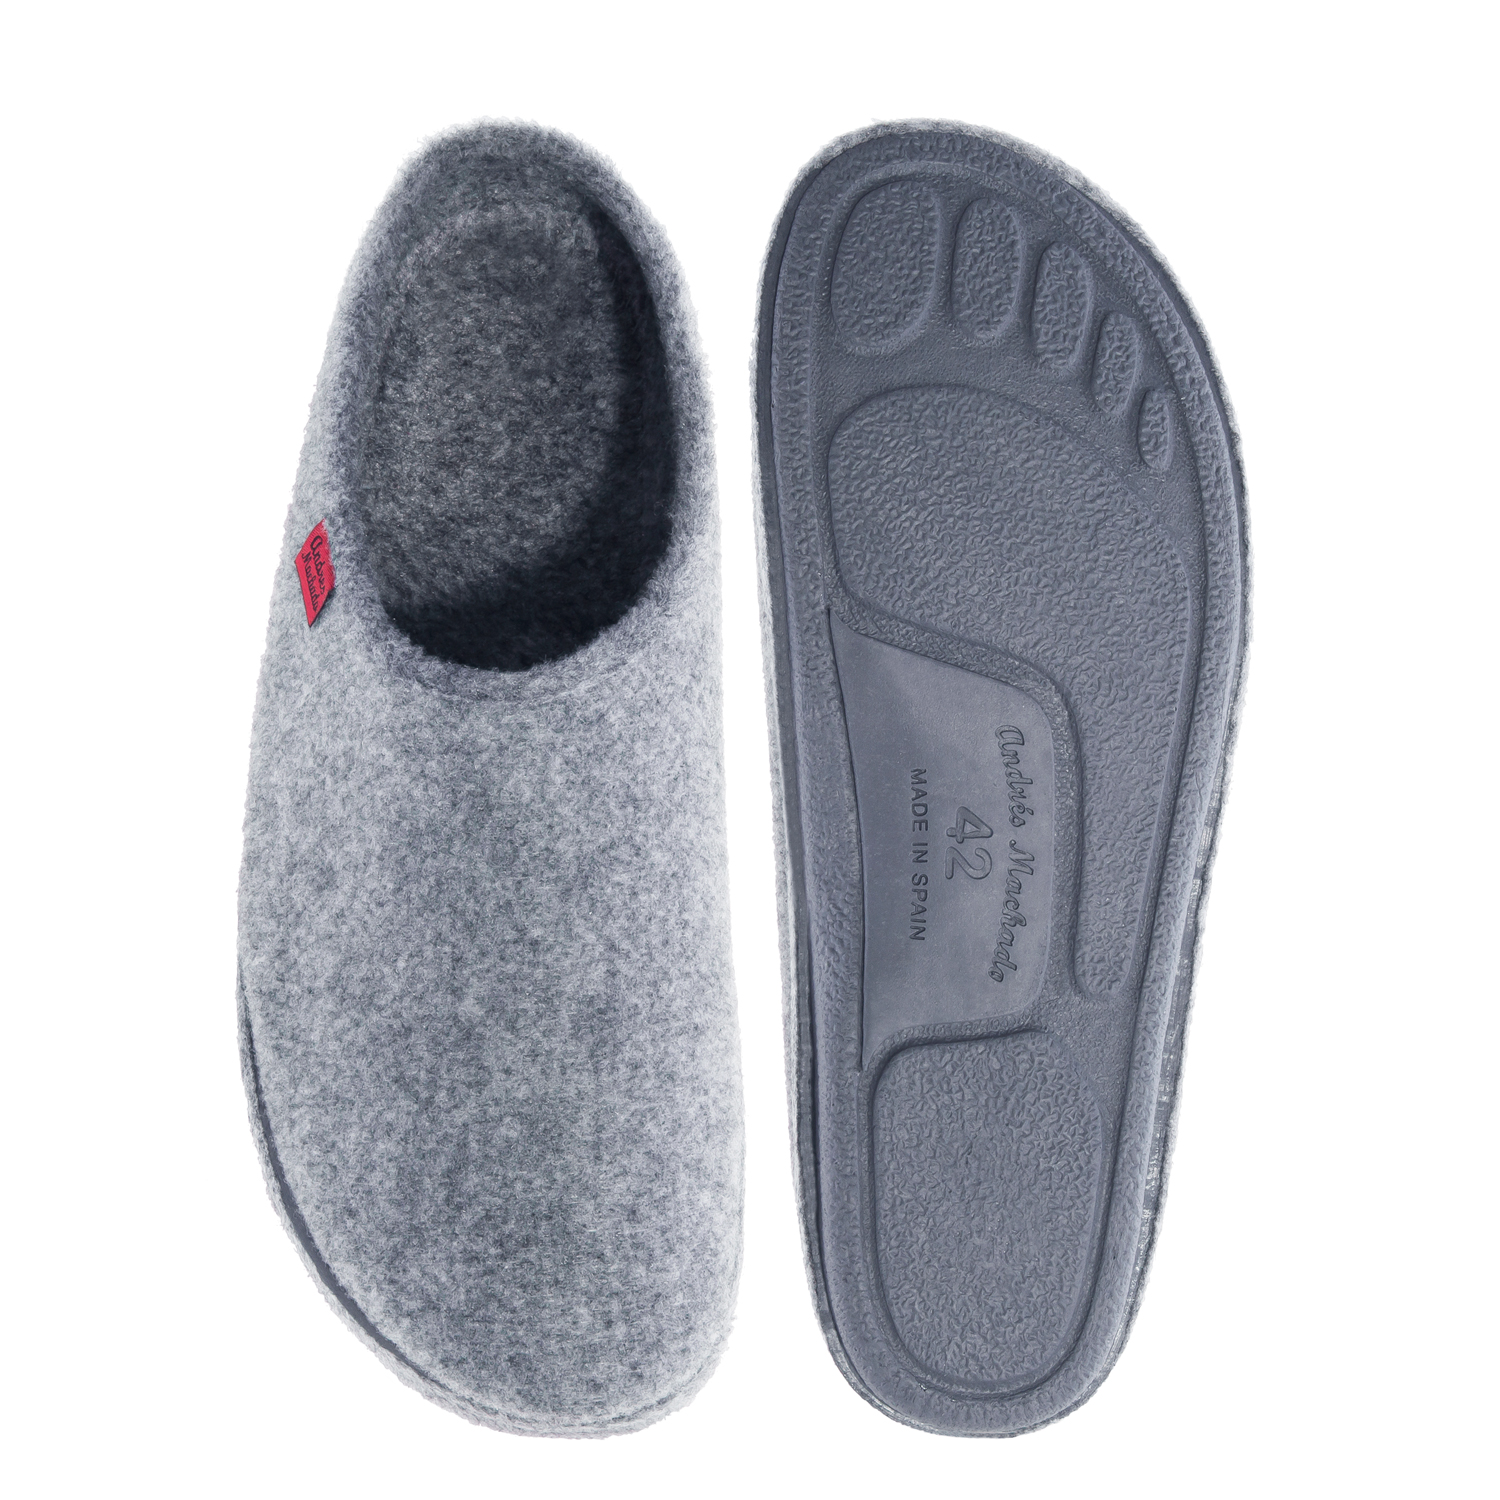 Very comfortable Grey Felt Slippers with footbed